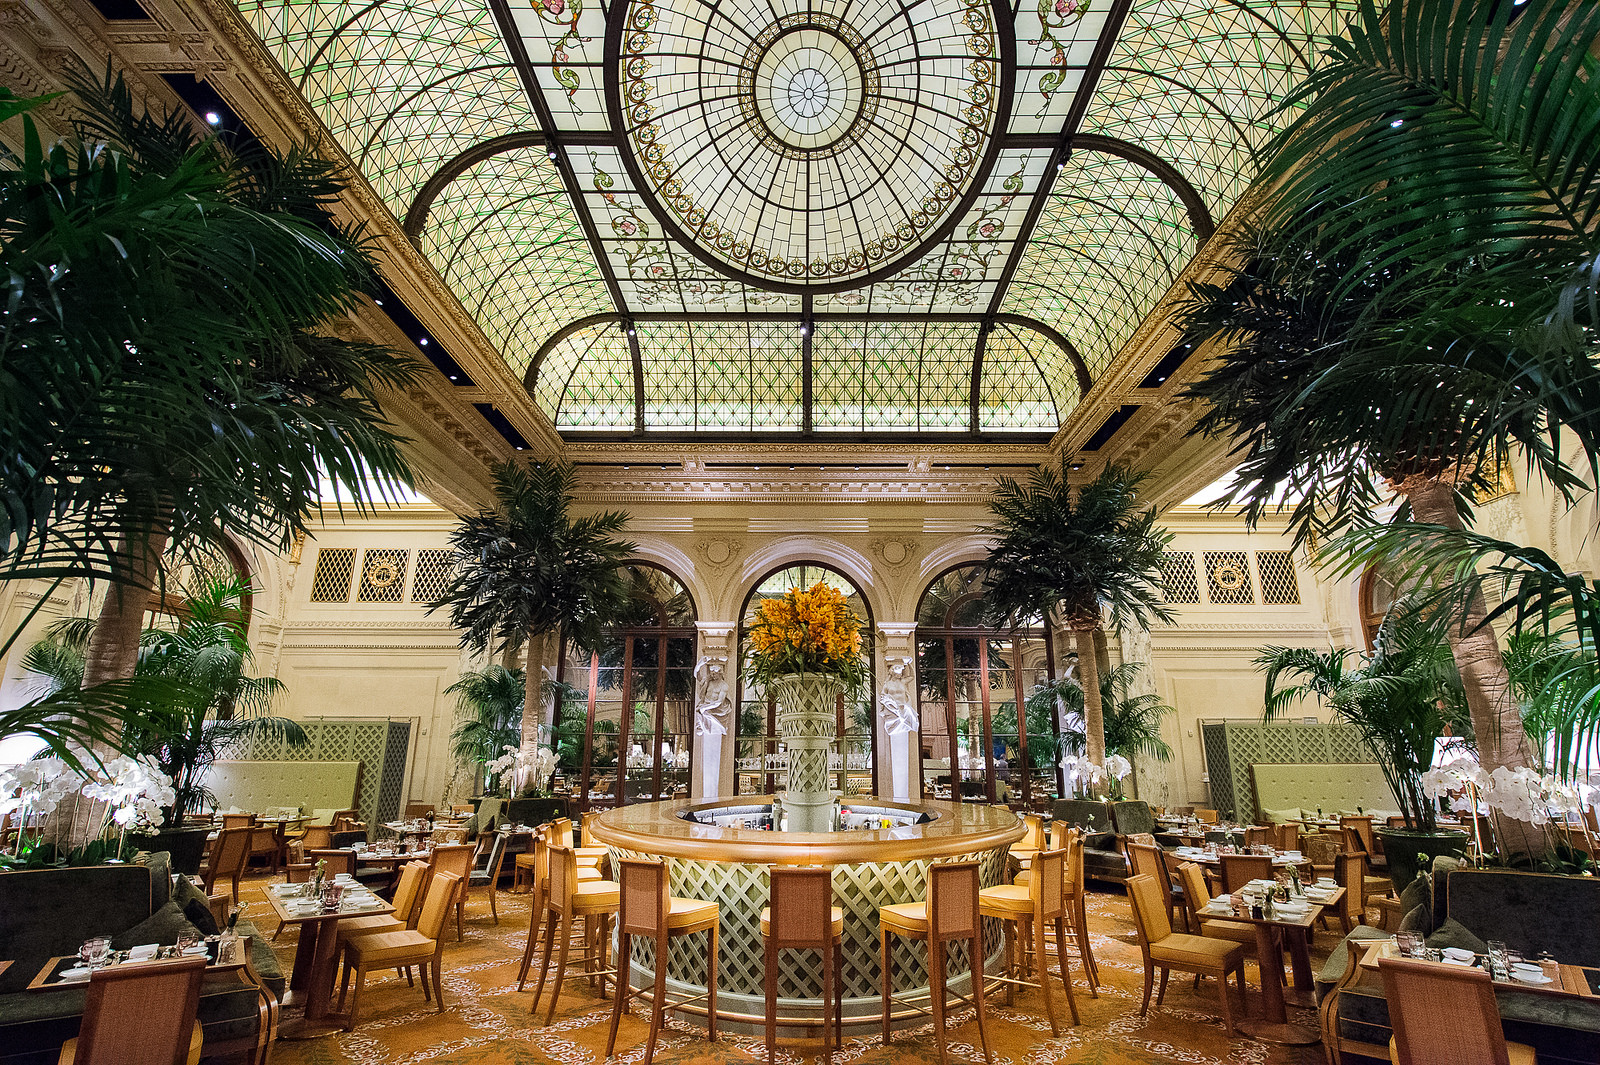 The Palm Court at The Plaza Hotel in New York